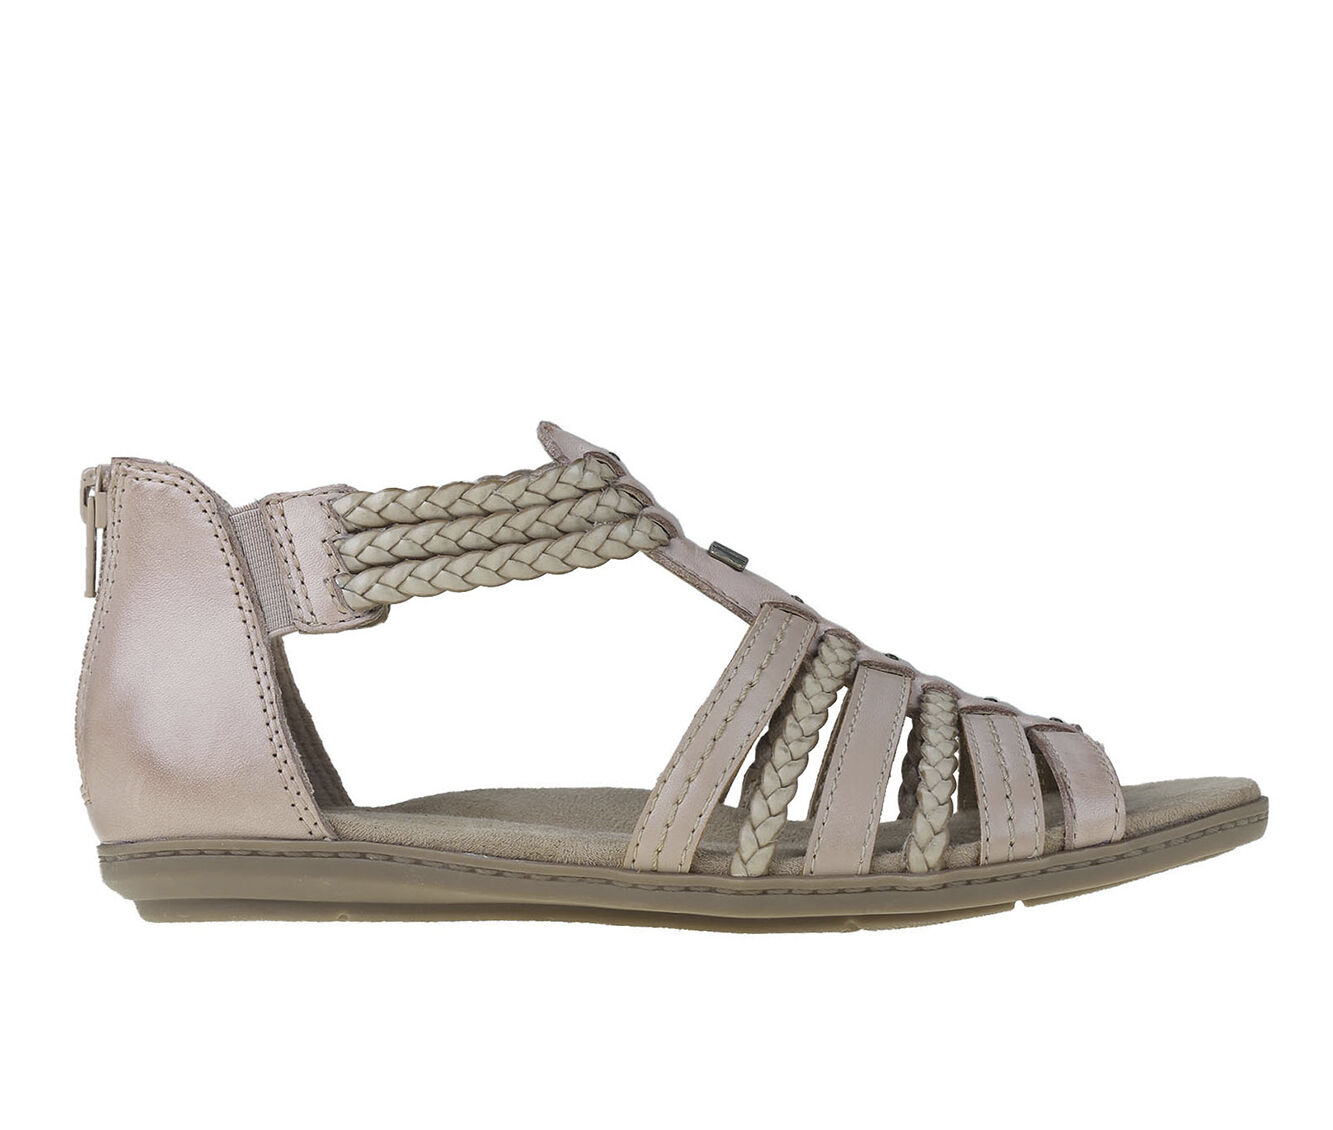 Women's Earth Origins Belle Blaine Sandals Dusty Pink